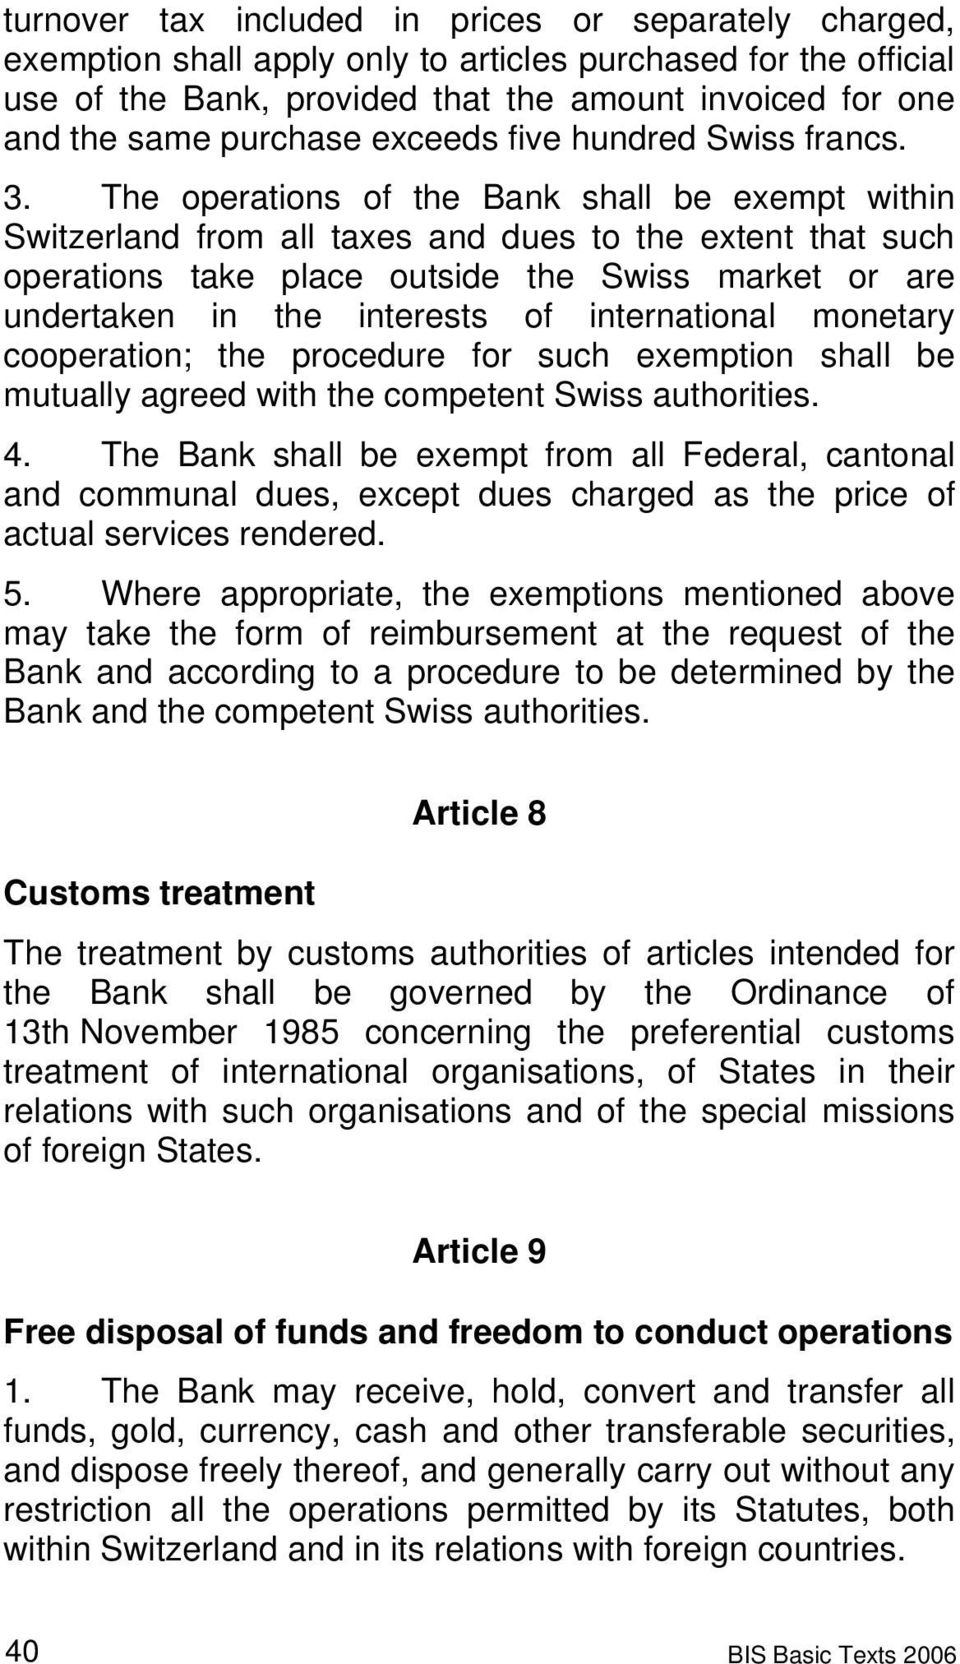 The operations of the Bank shall be exempt within Switzerland from all taxes and dues to the extent that such operations take place outside the Swiss market or are undertaken in the interests of